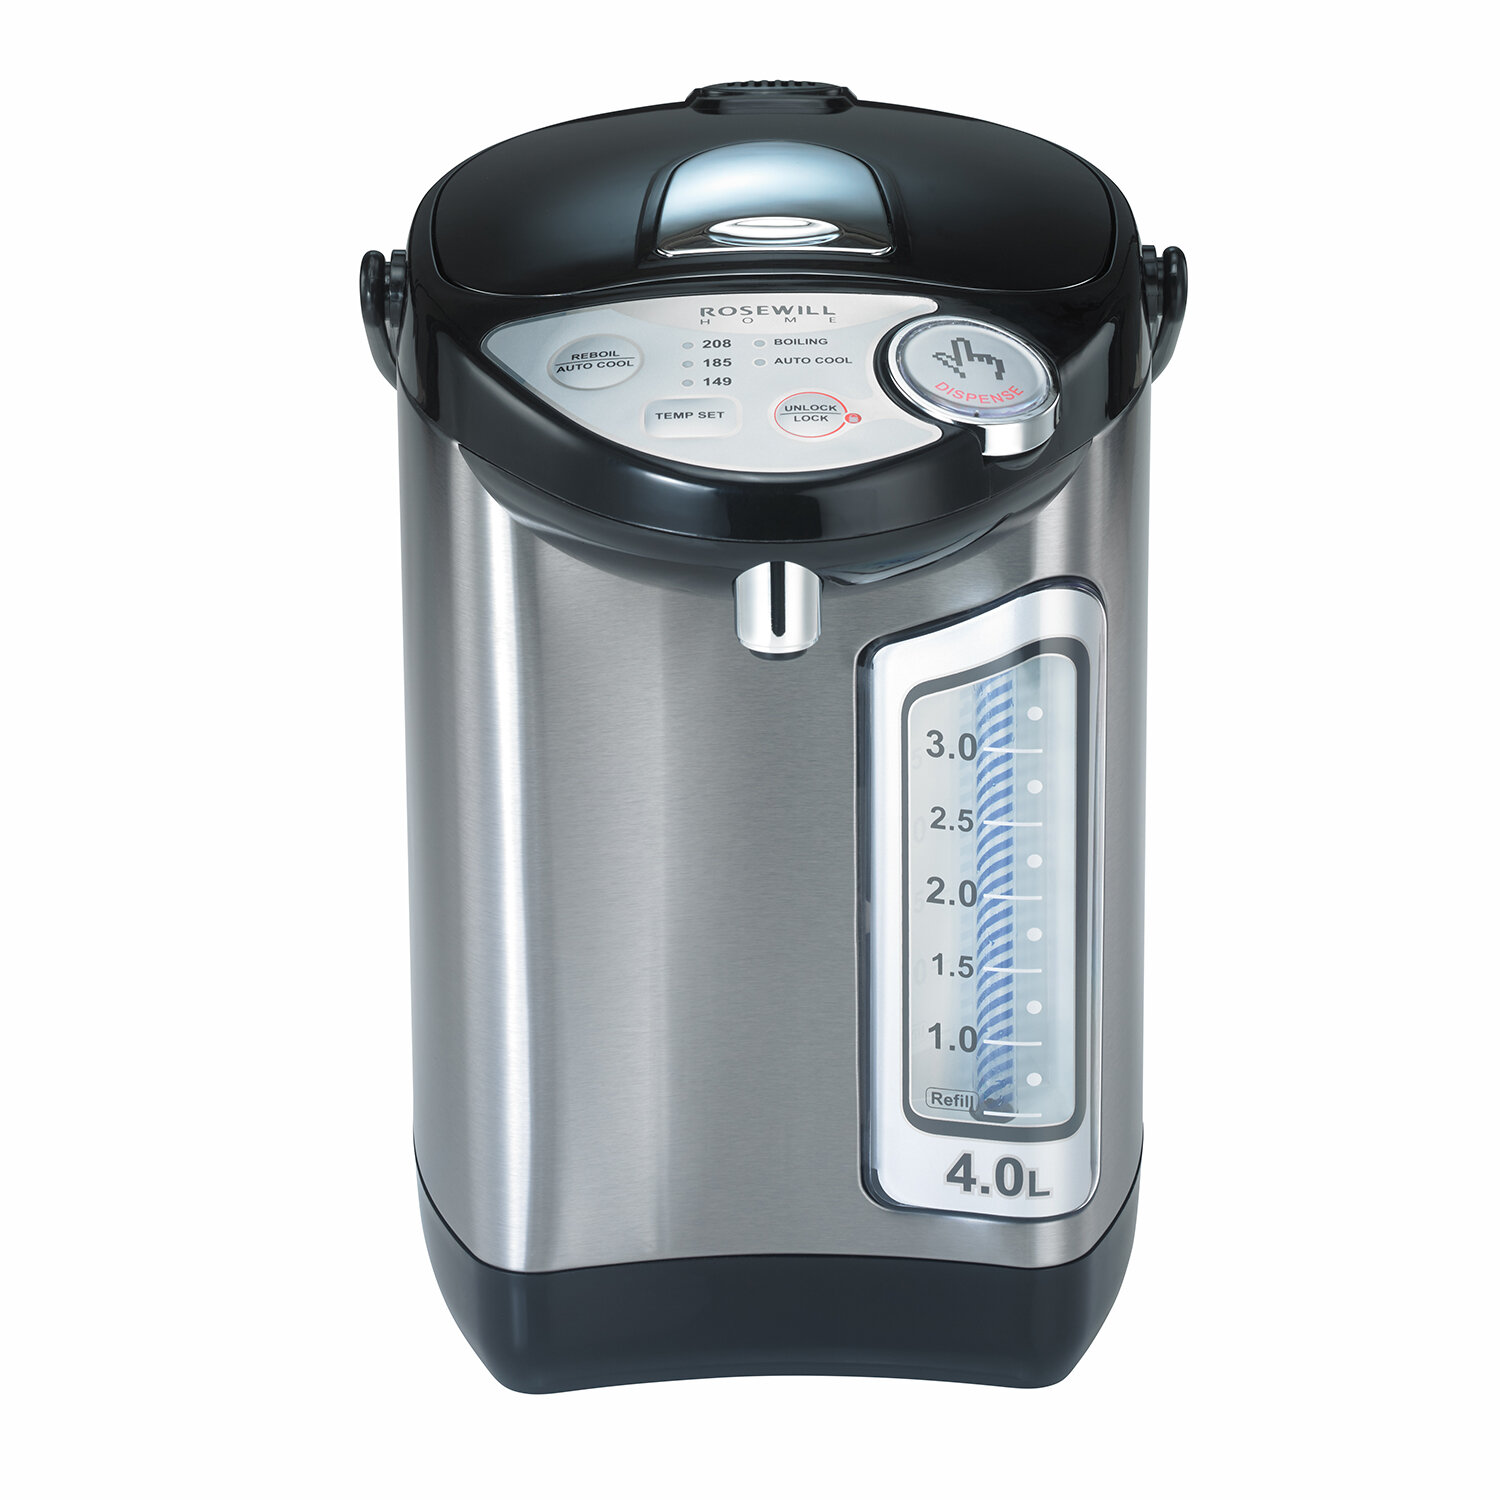 Rosewill 4.2-qt. Stainless Steel Water Boiler and Warmer with Auto ...